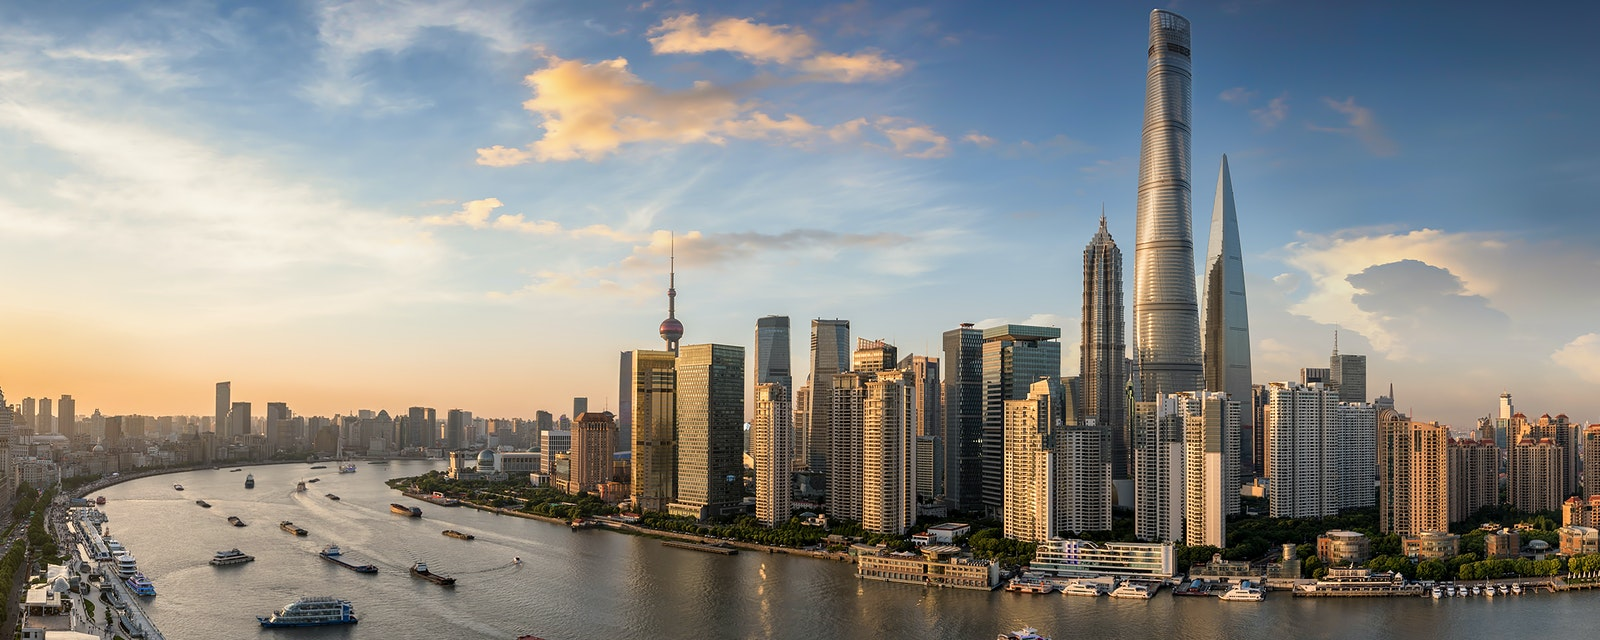 Cityscape of Shanghai City